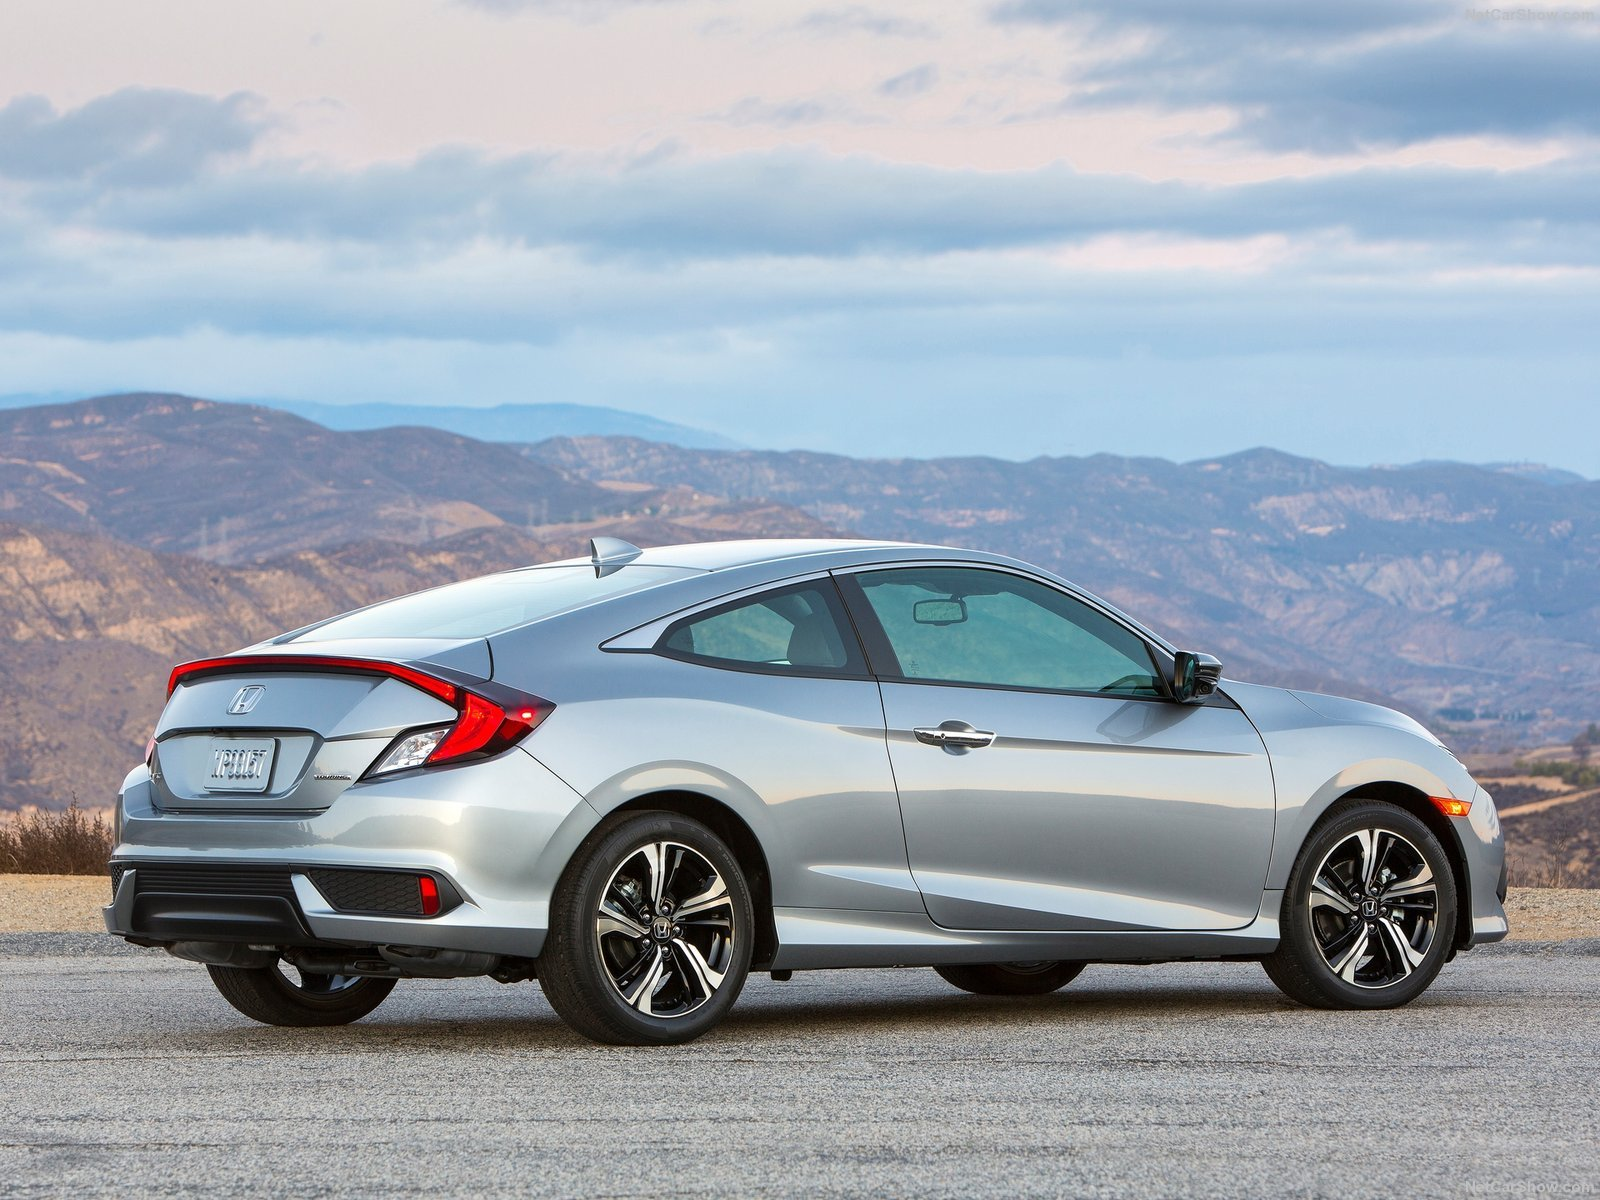 2016 Honda Civic Cars Silver Coupe Wallpaper 1600x1200